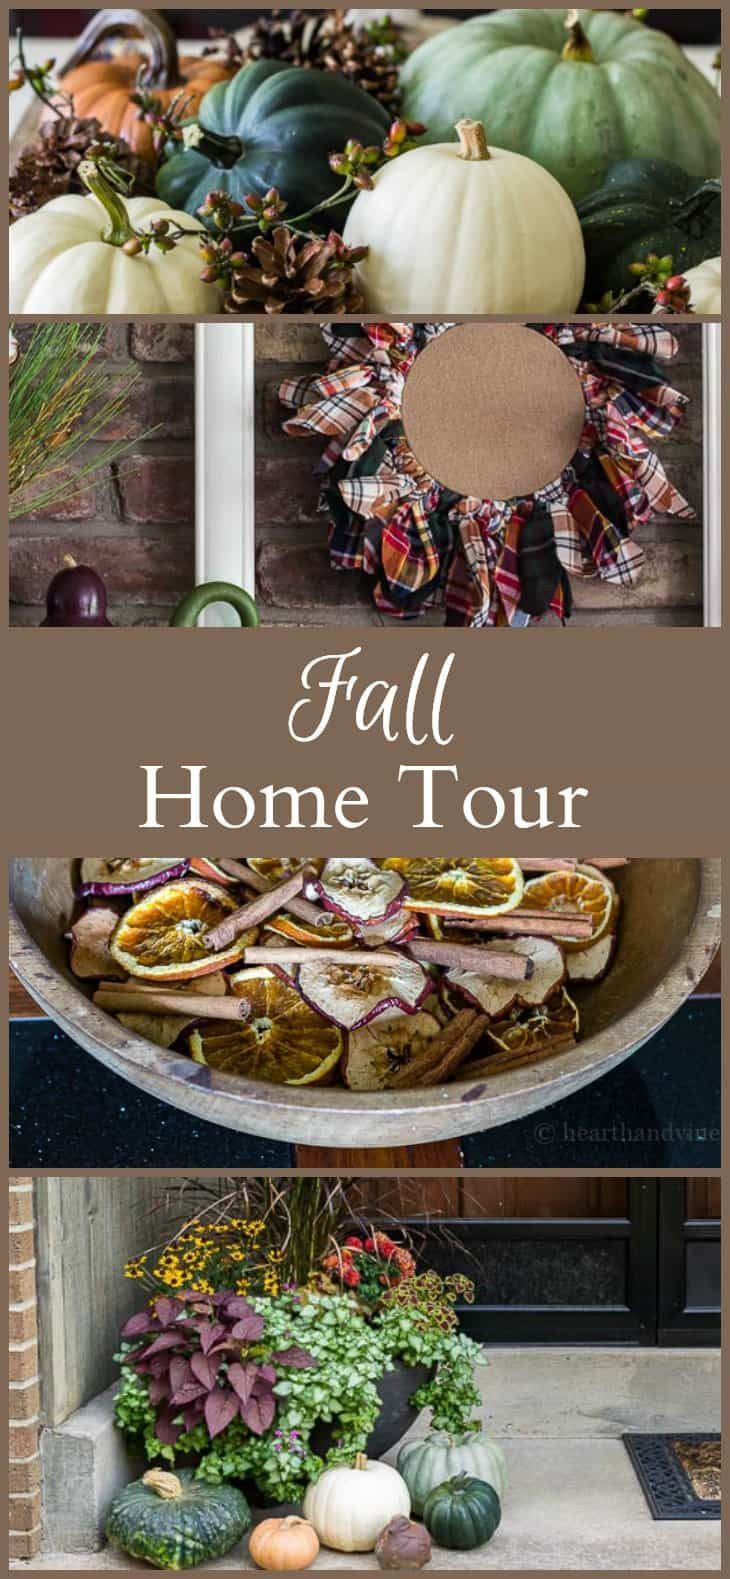 A fall home tour awash with all the beautiful colors of autumn, and filled with several easy diy projects that will inspire your own home decor.